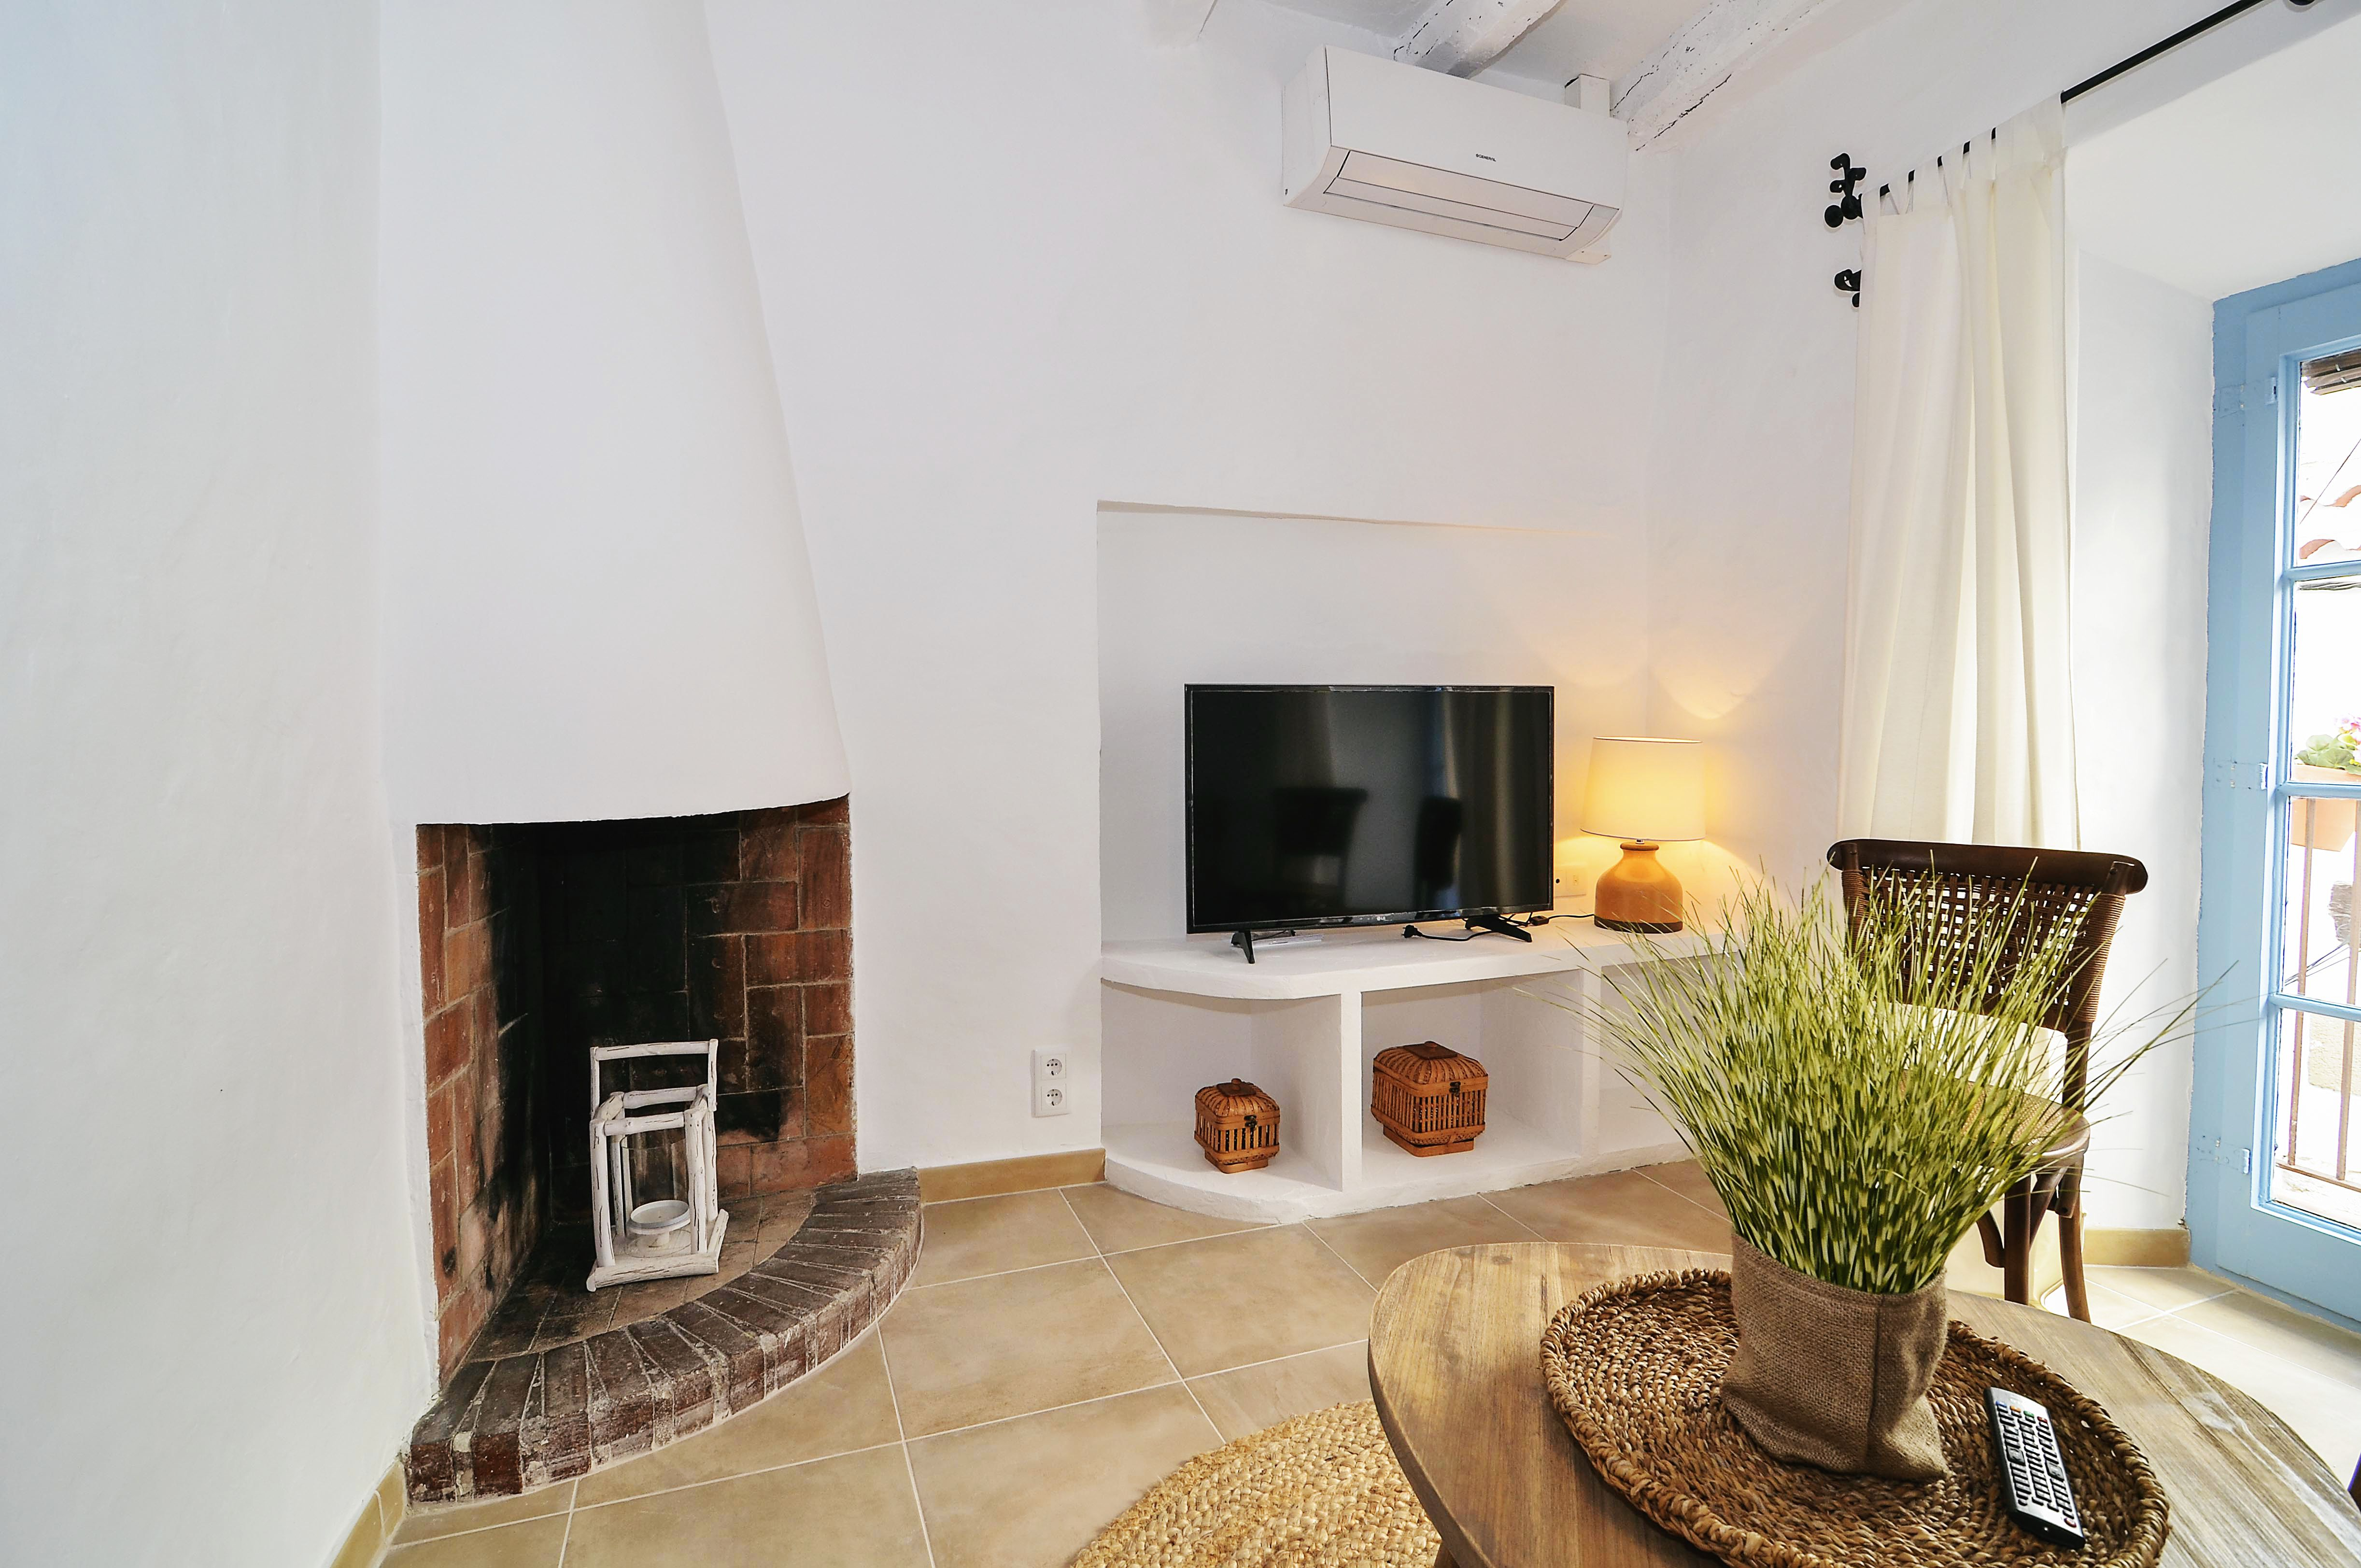 House tour: old fisherman's house in Sitges: sitting room with fireplace